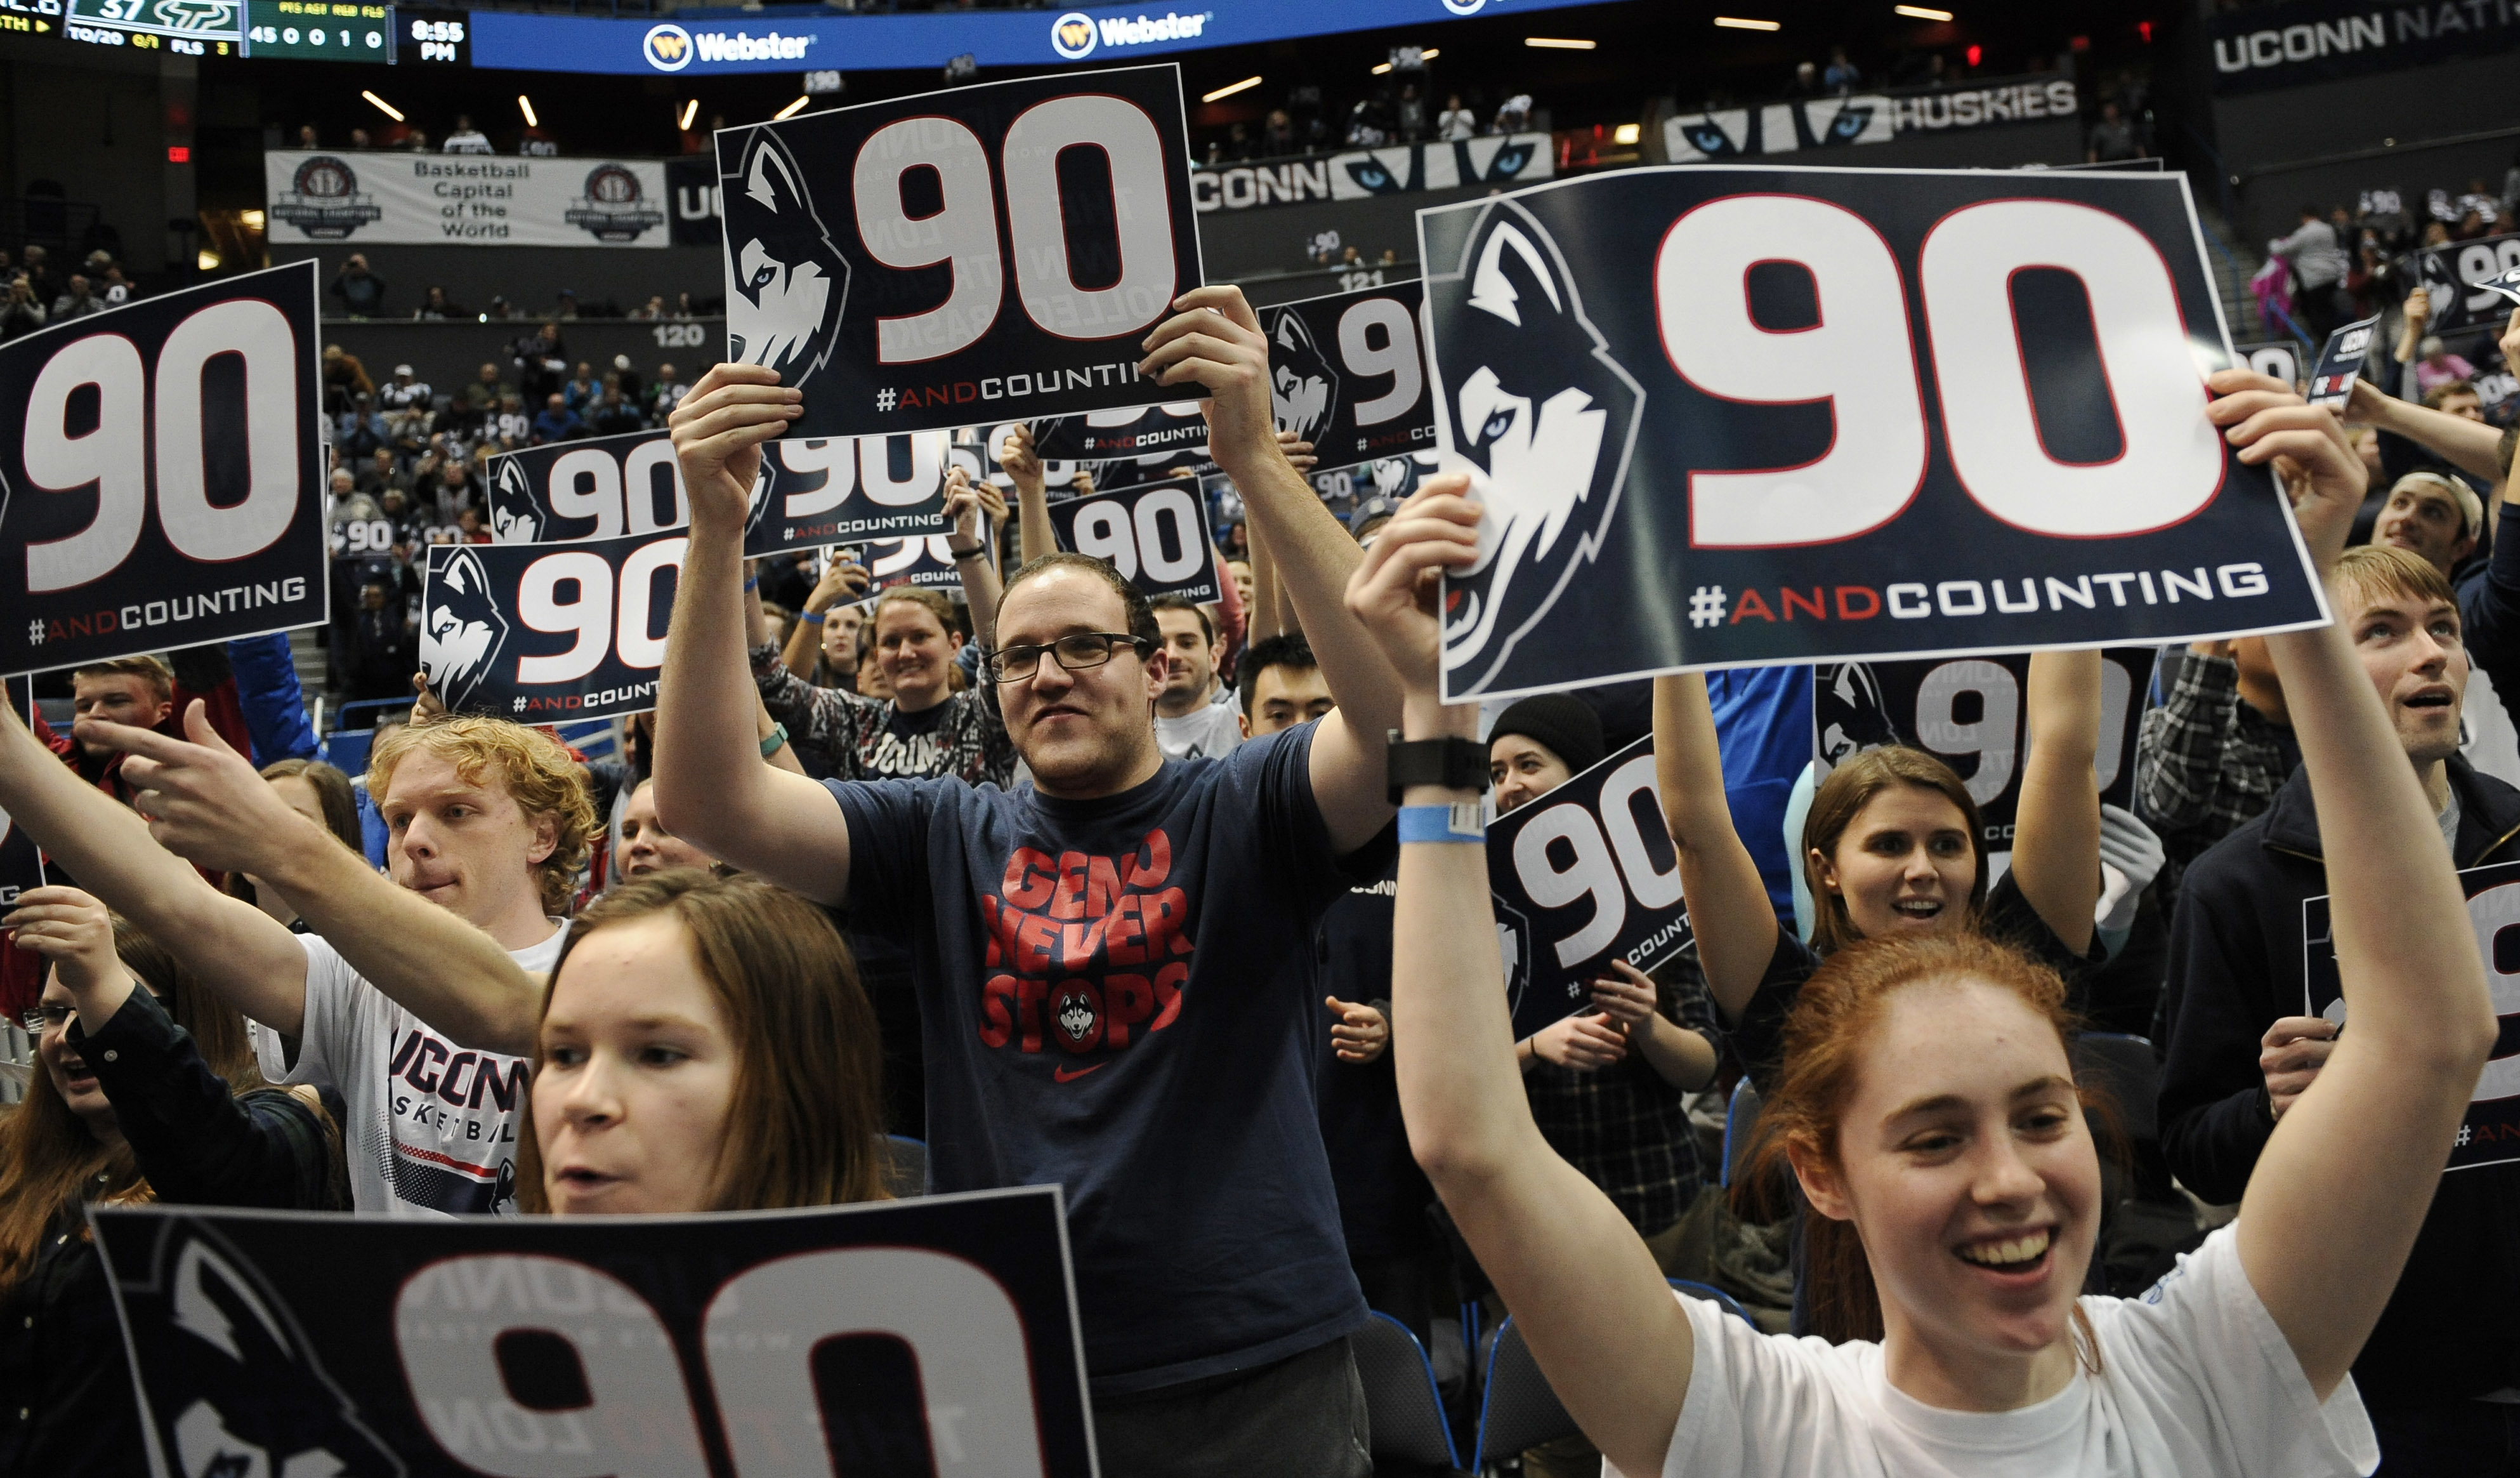 Fans hold up signs for Connecticut's 90 game win streak at the end of an NCAA college basketball game against South Florida, Tuesday, Jan. 10, 2017, in Hartford, Conn. (AP Photo/Jessica Hill)